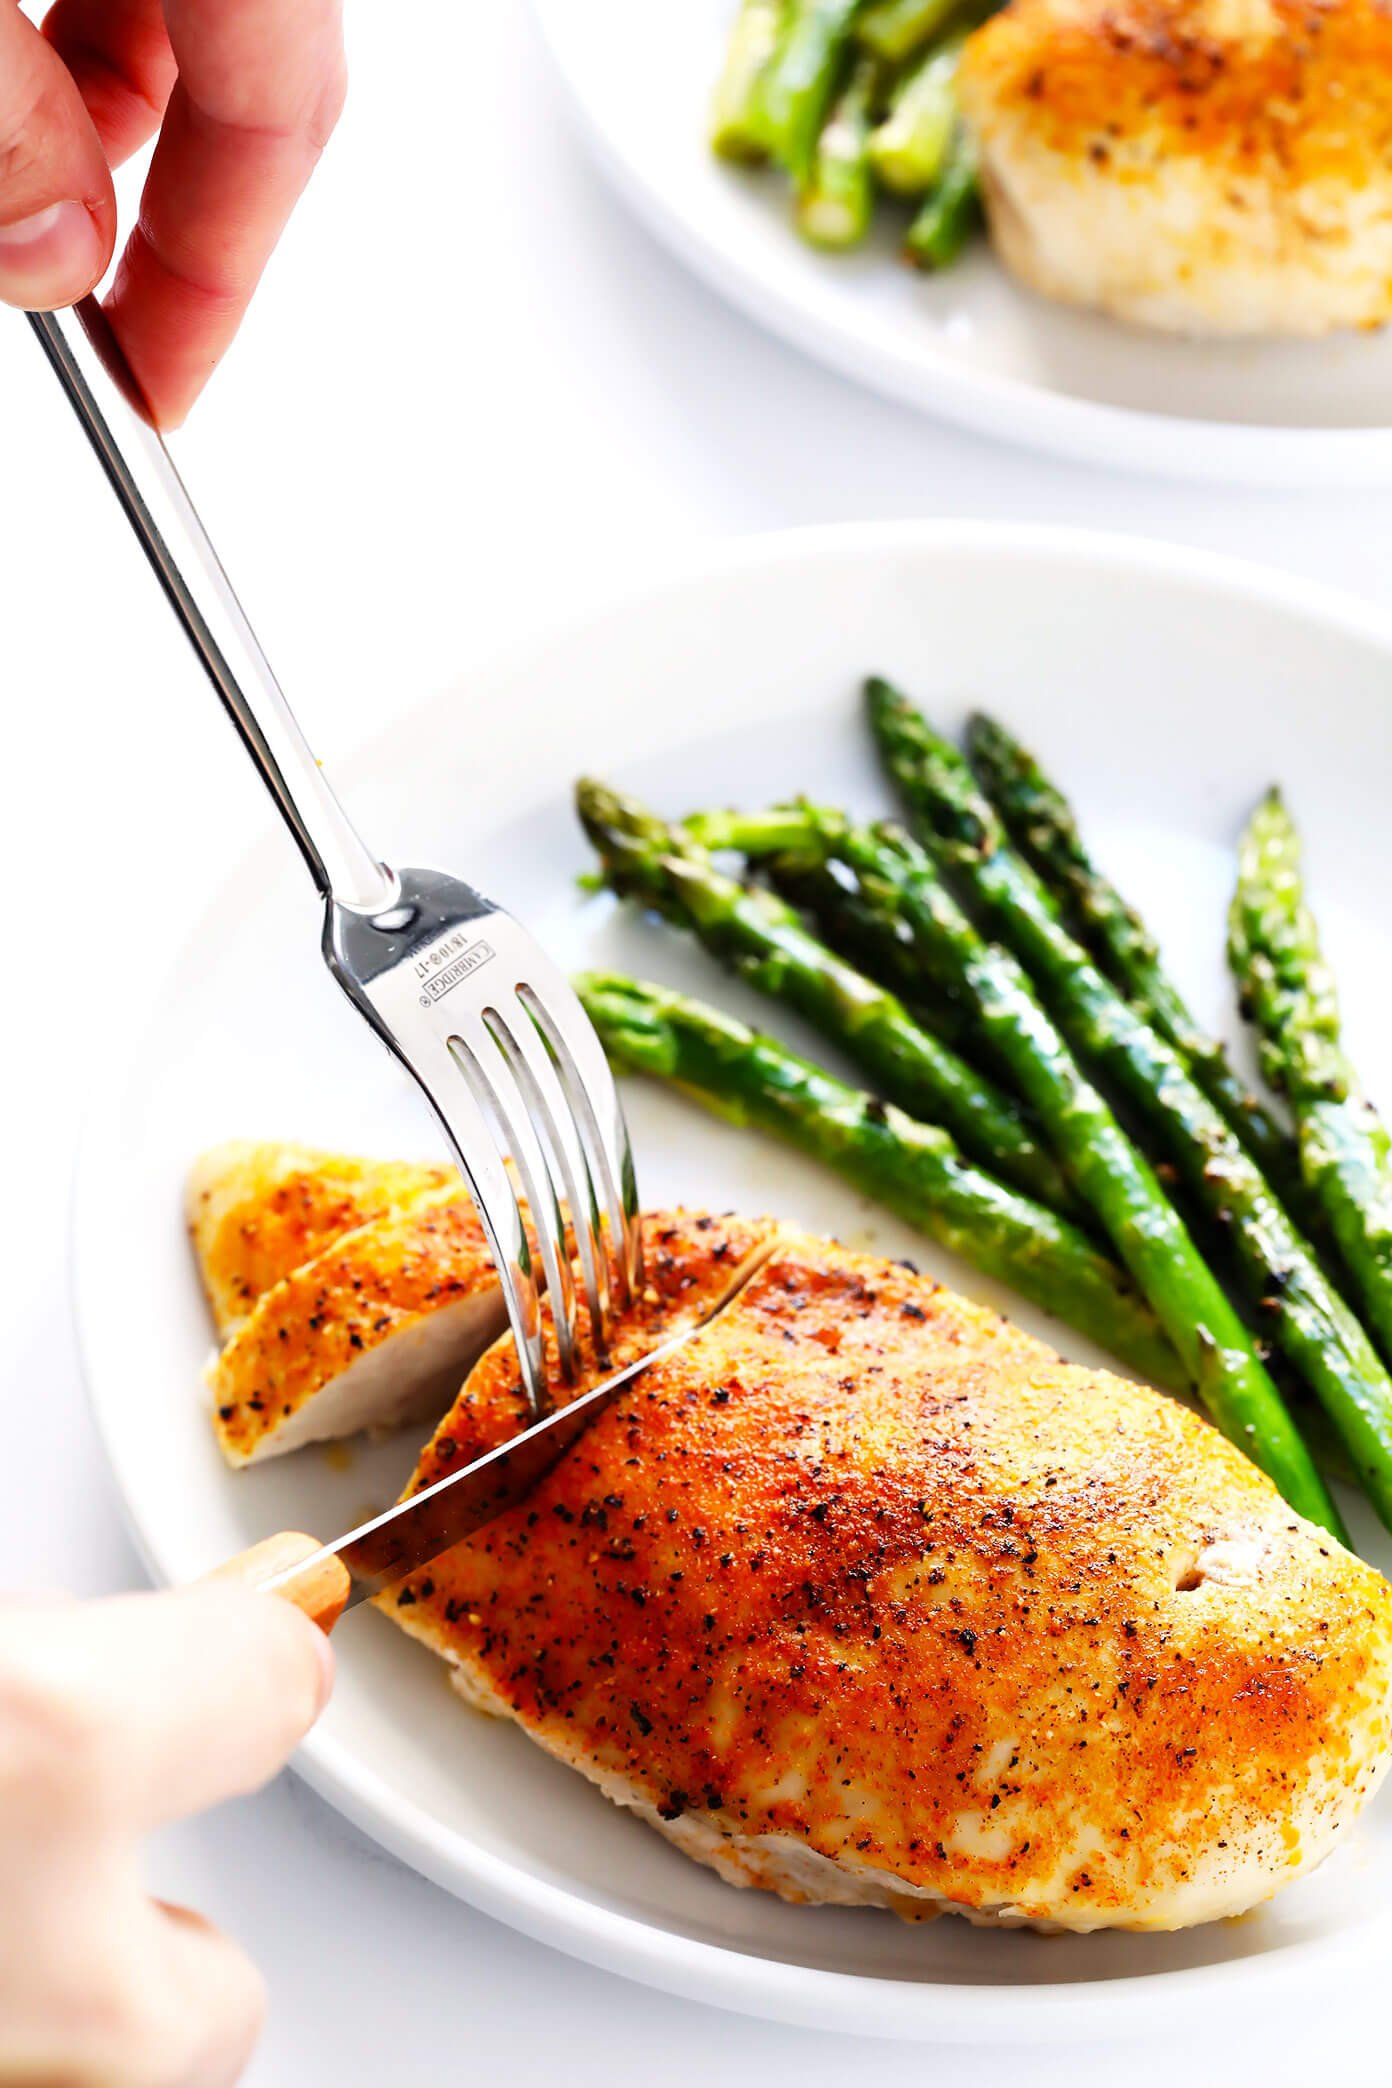 Baked Chicken Breast with Roasted Asparagus